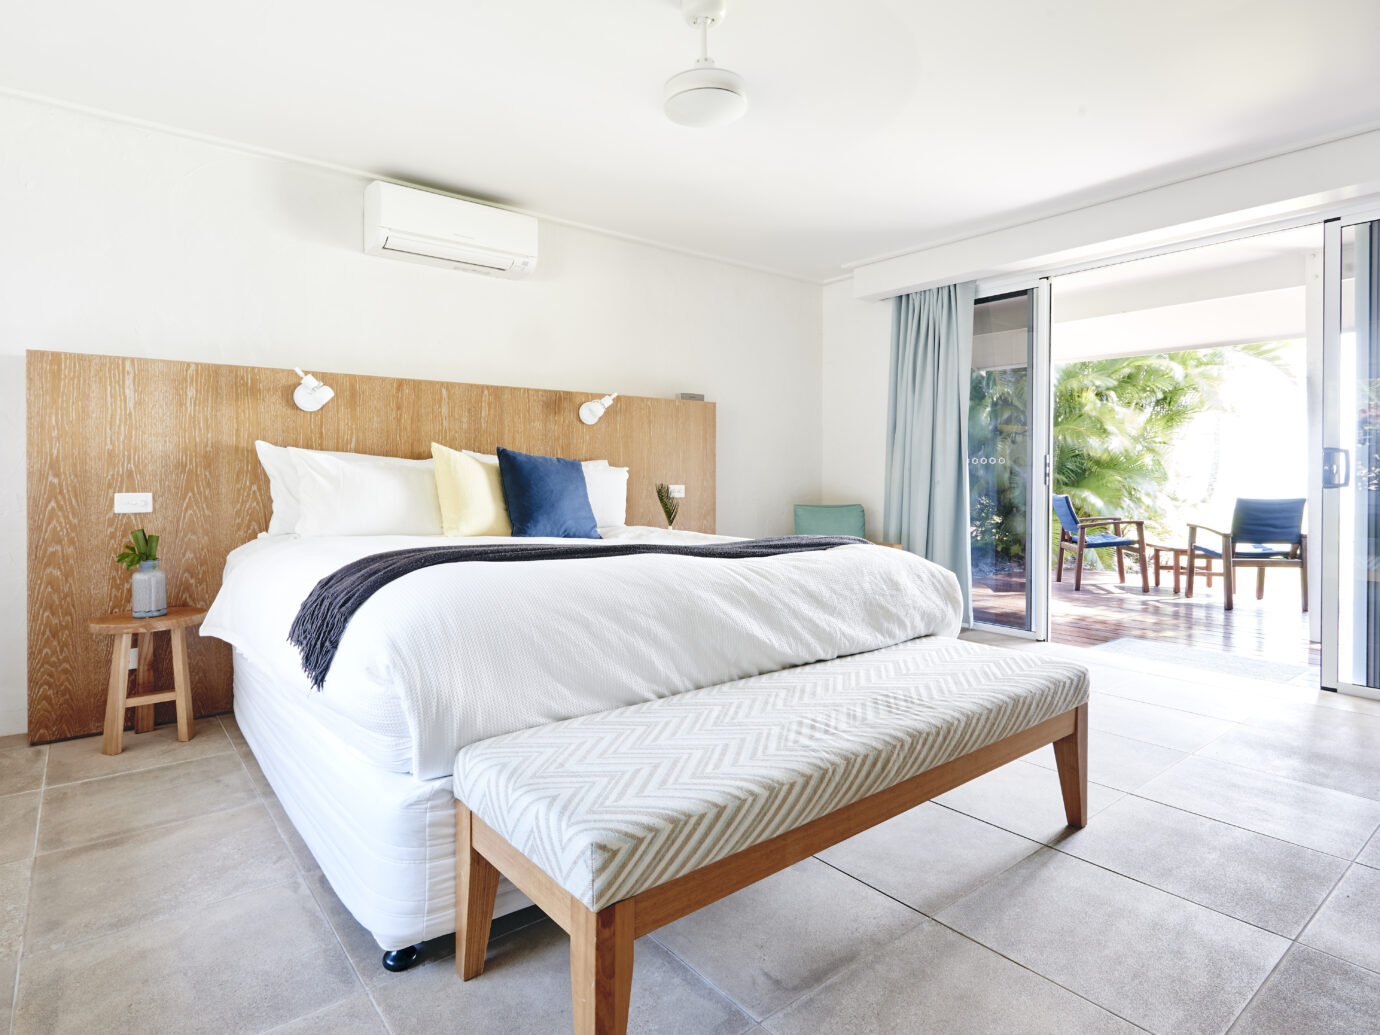 Bedroom at Orpheus Island